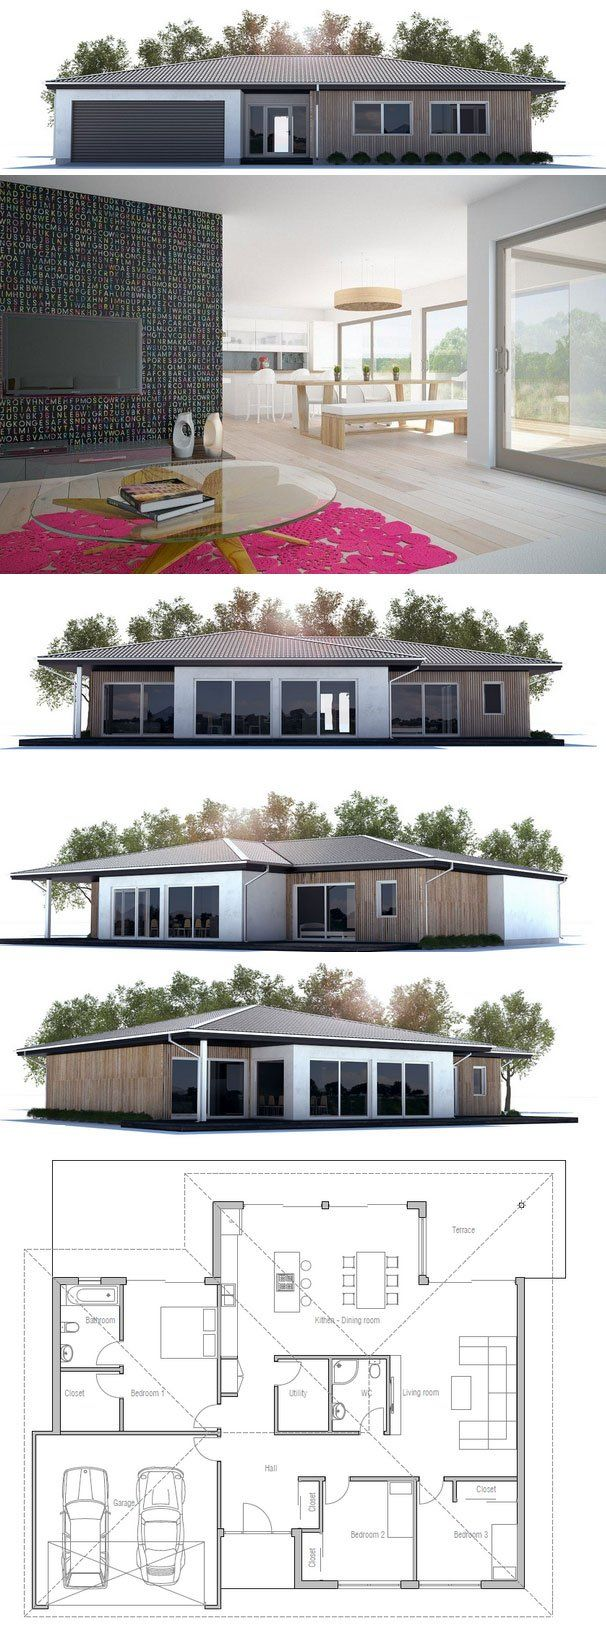 Modern Architecture, House Design with three bedrooms. Floor Plan from ConceptHome.com